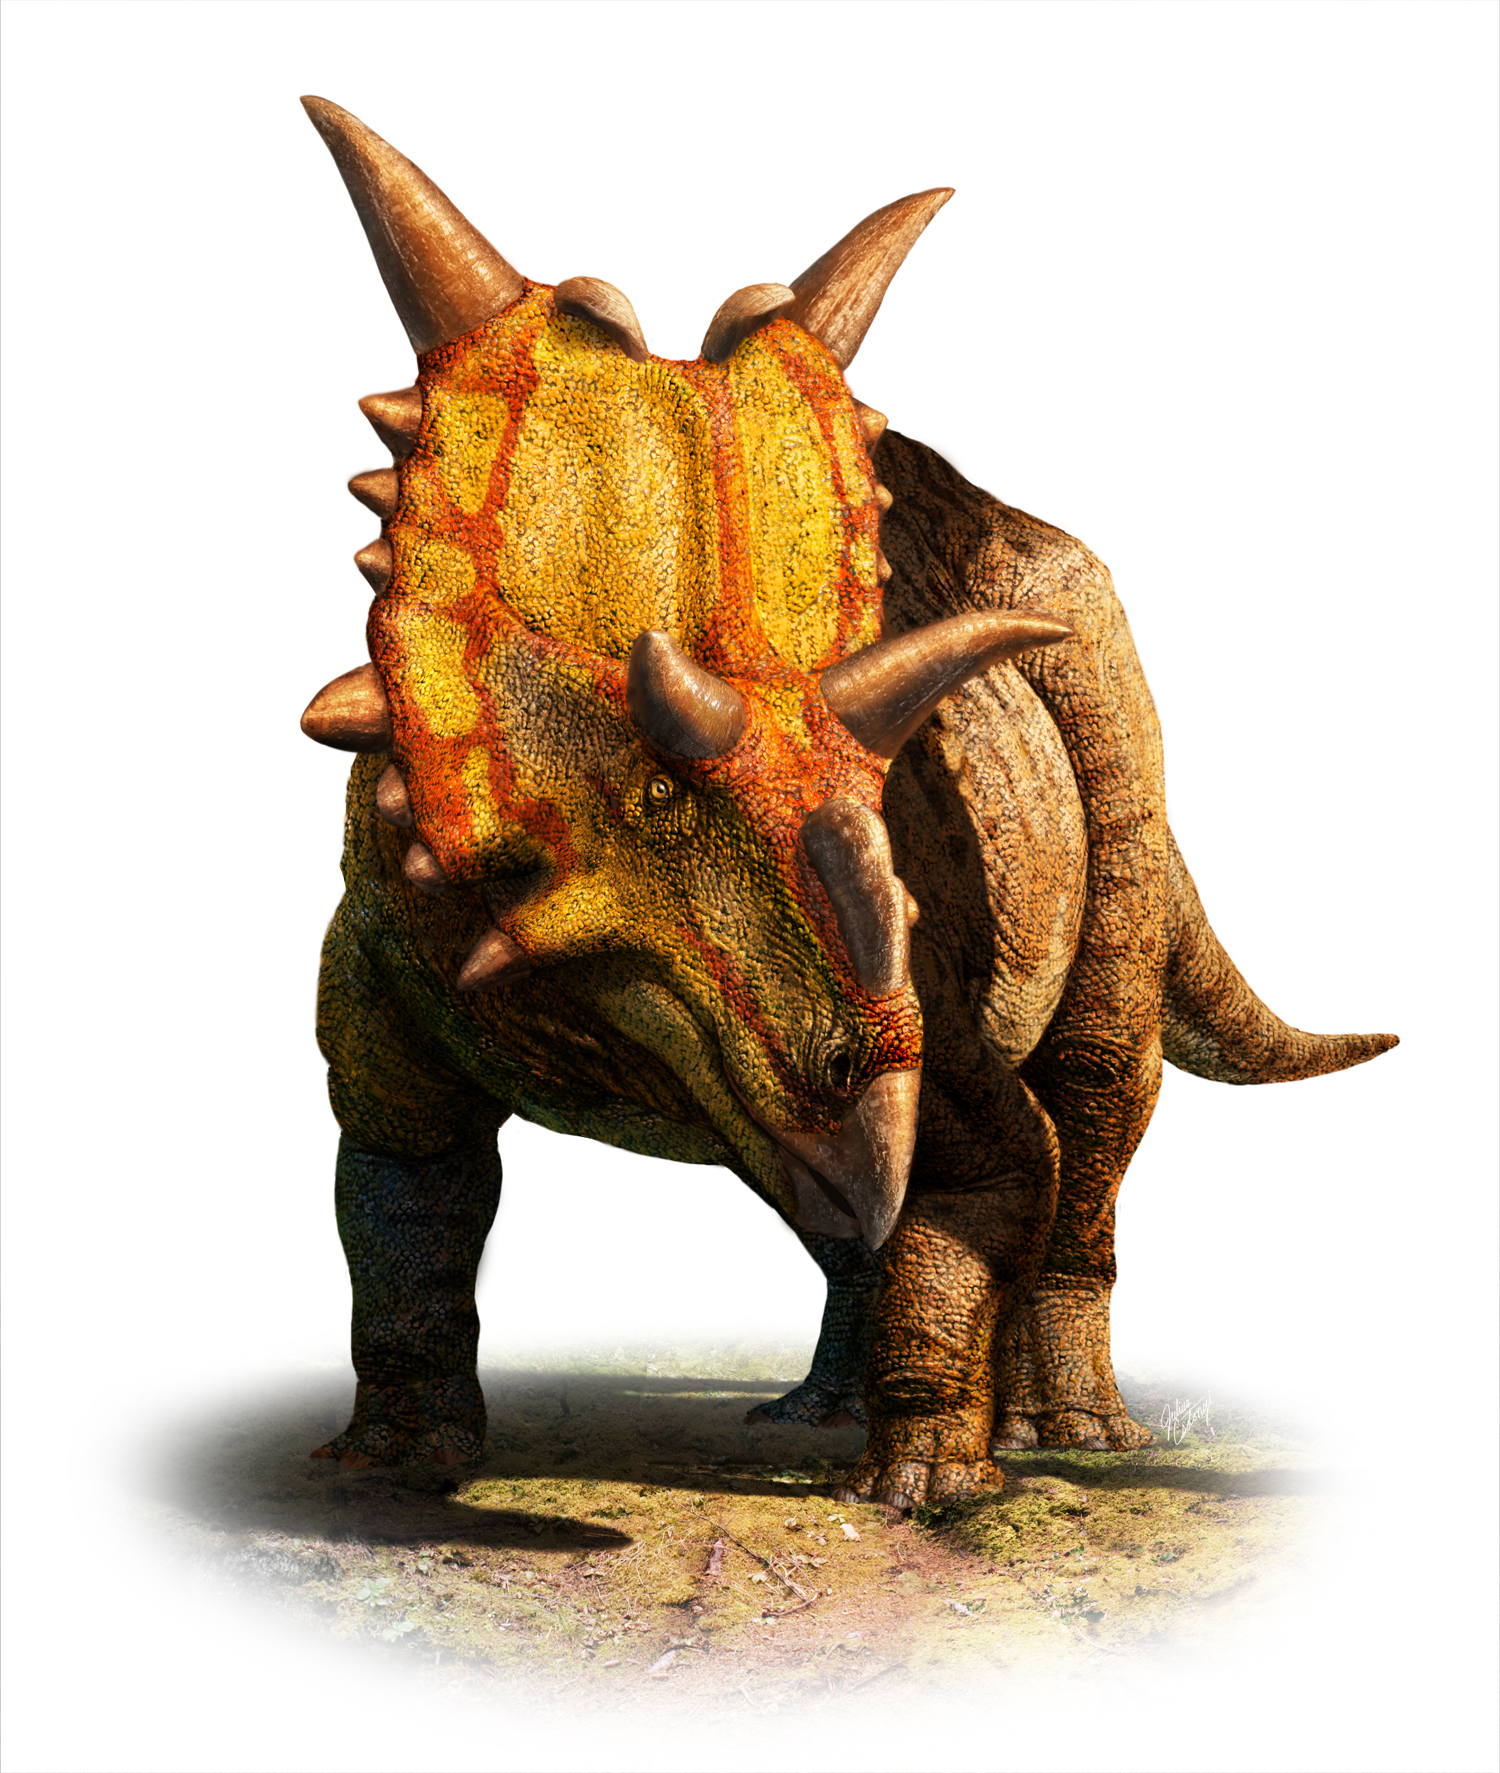 Xenoceratops_Cutout_White_1500.jpg